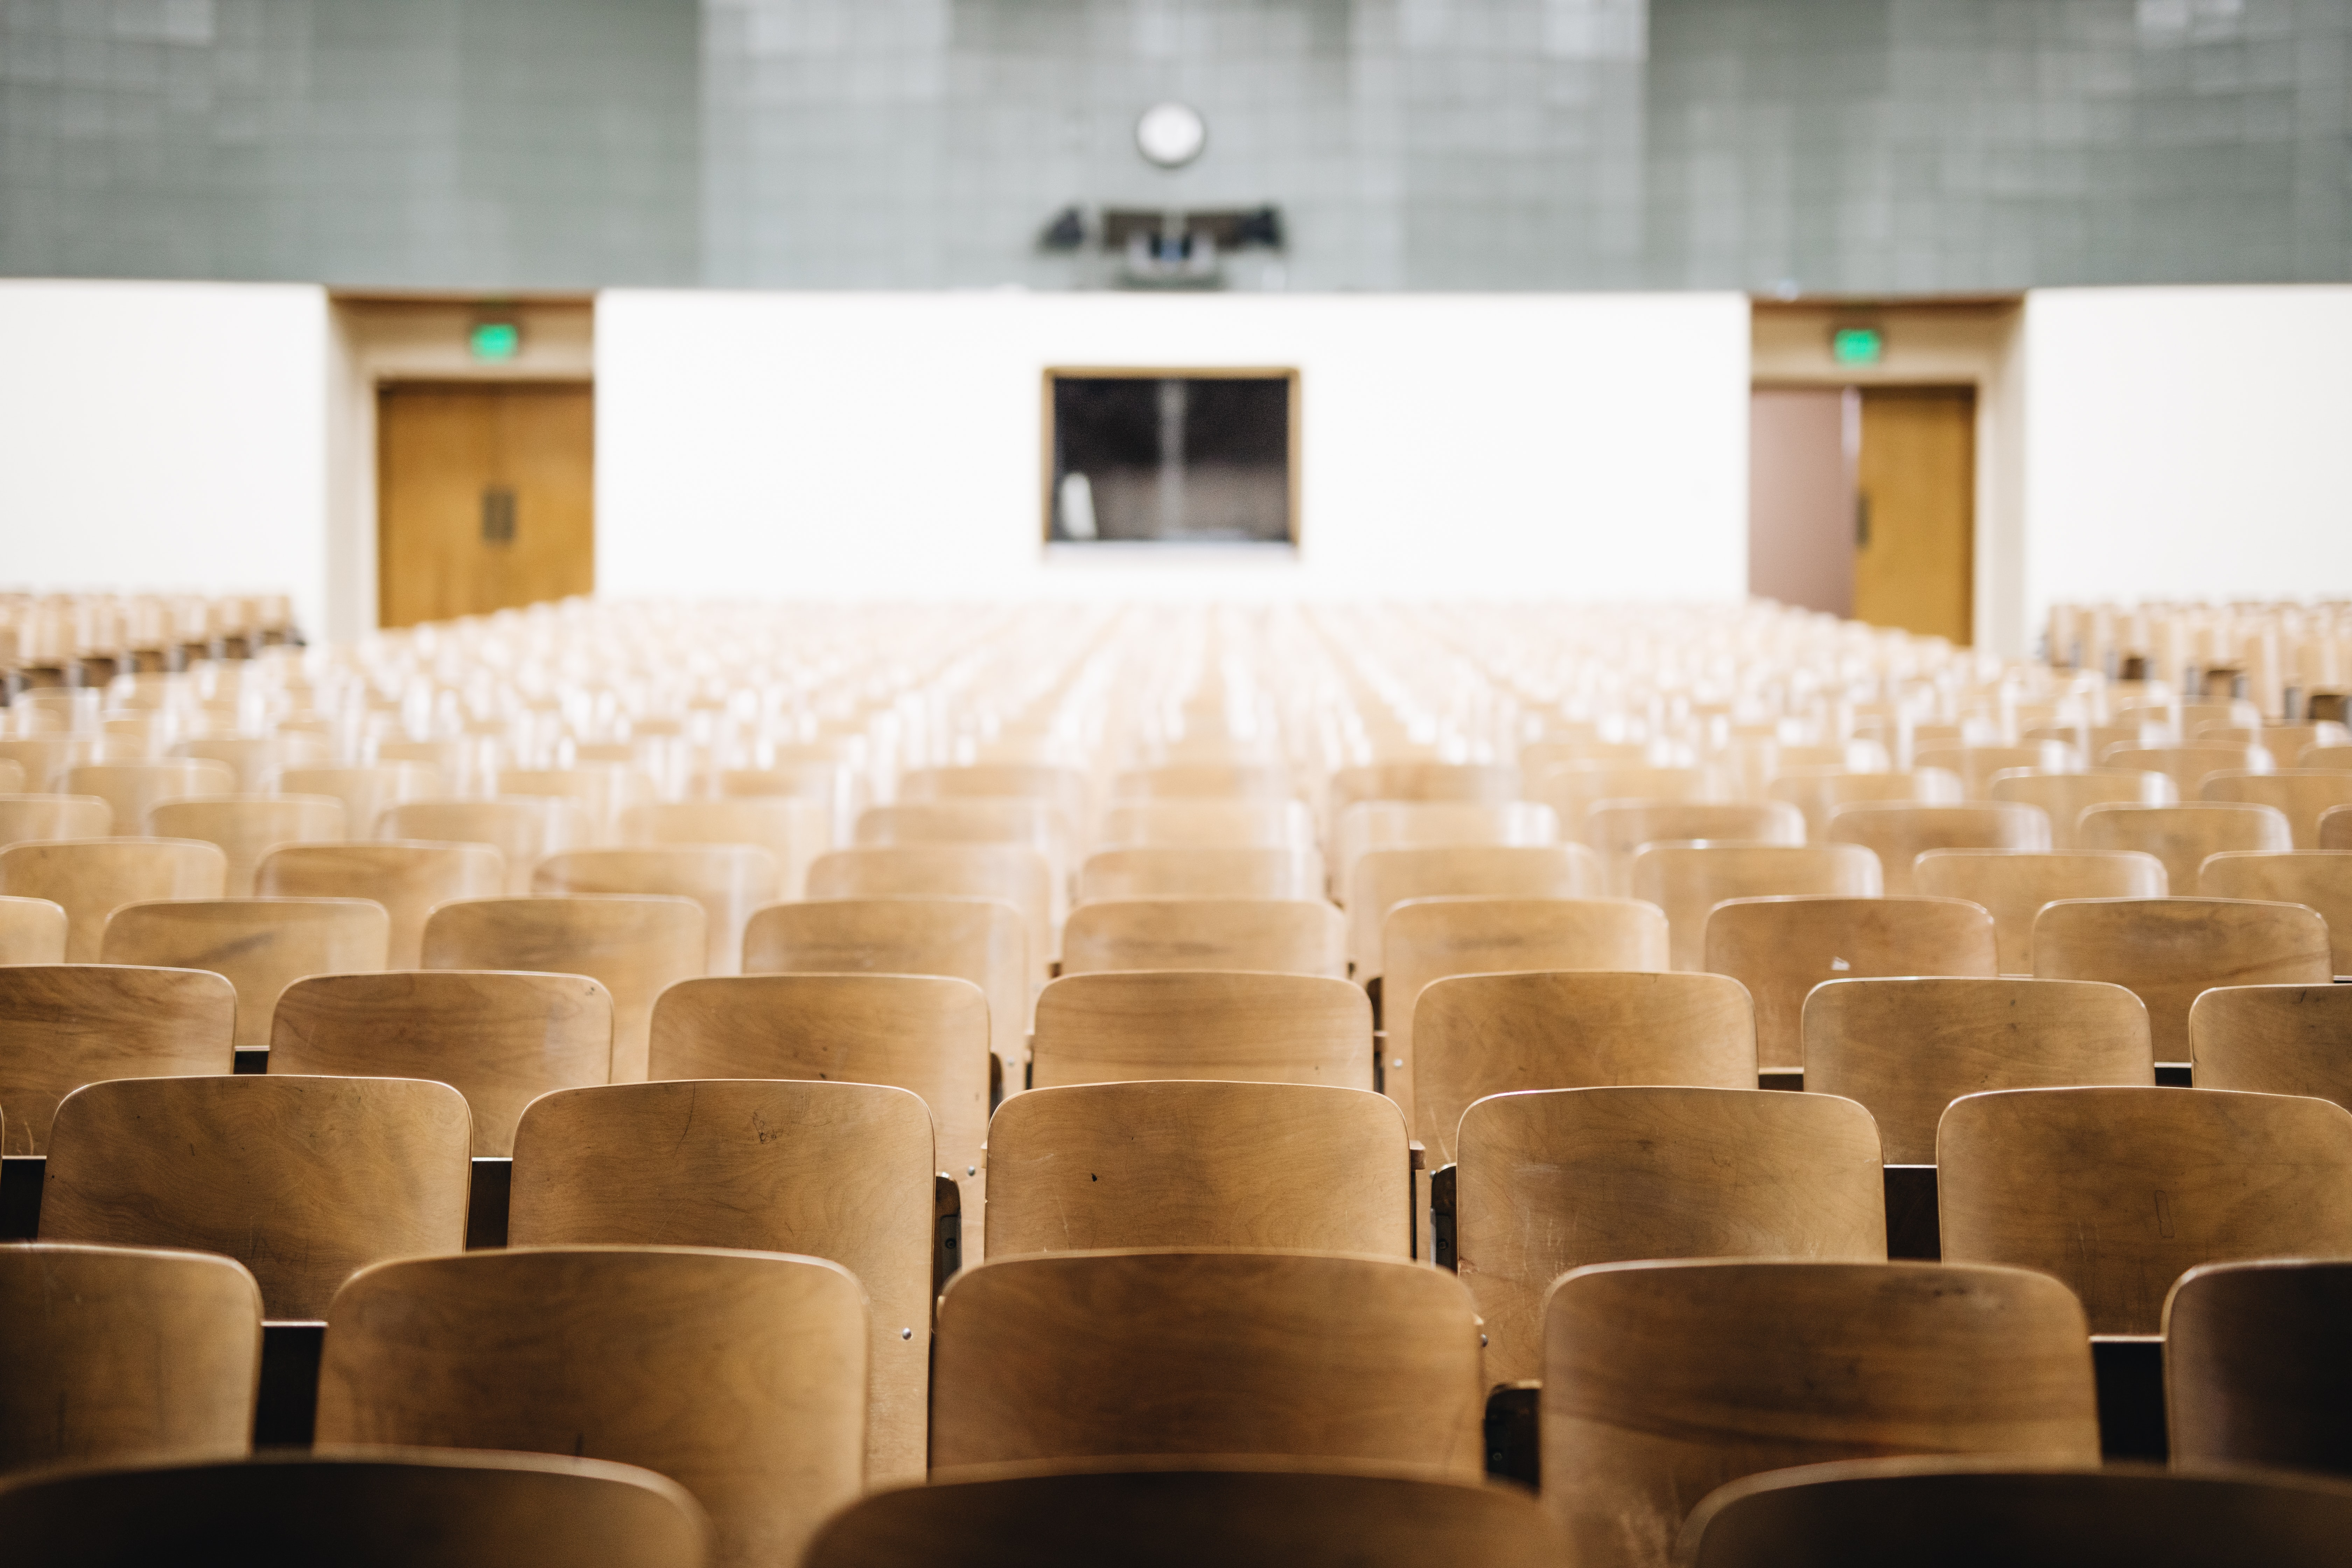 Empty lecture seats